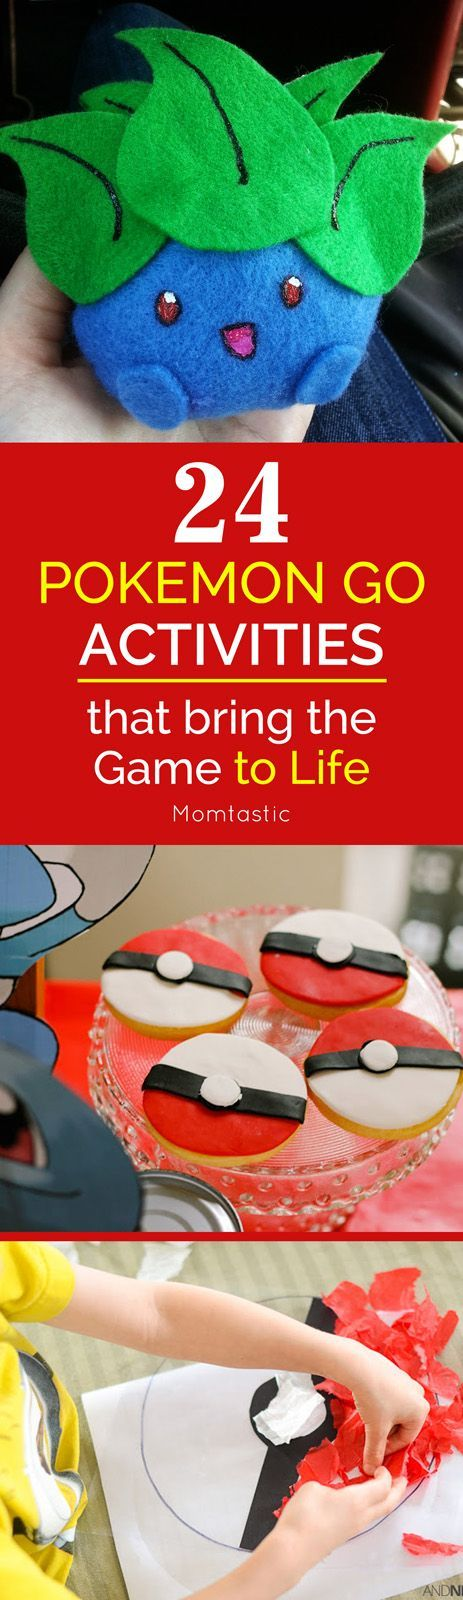 If your child has been recently introduced to Pokemon via the app, it might be a nice idea to bring the game into the real real world with a few fun Pokemon GO activities and crafts.